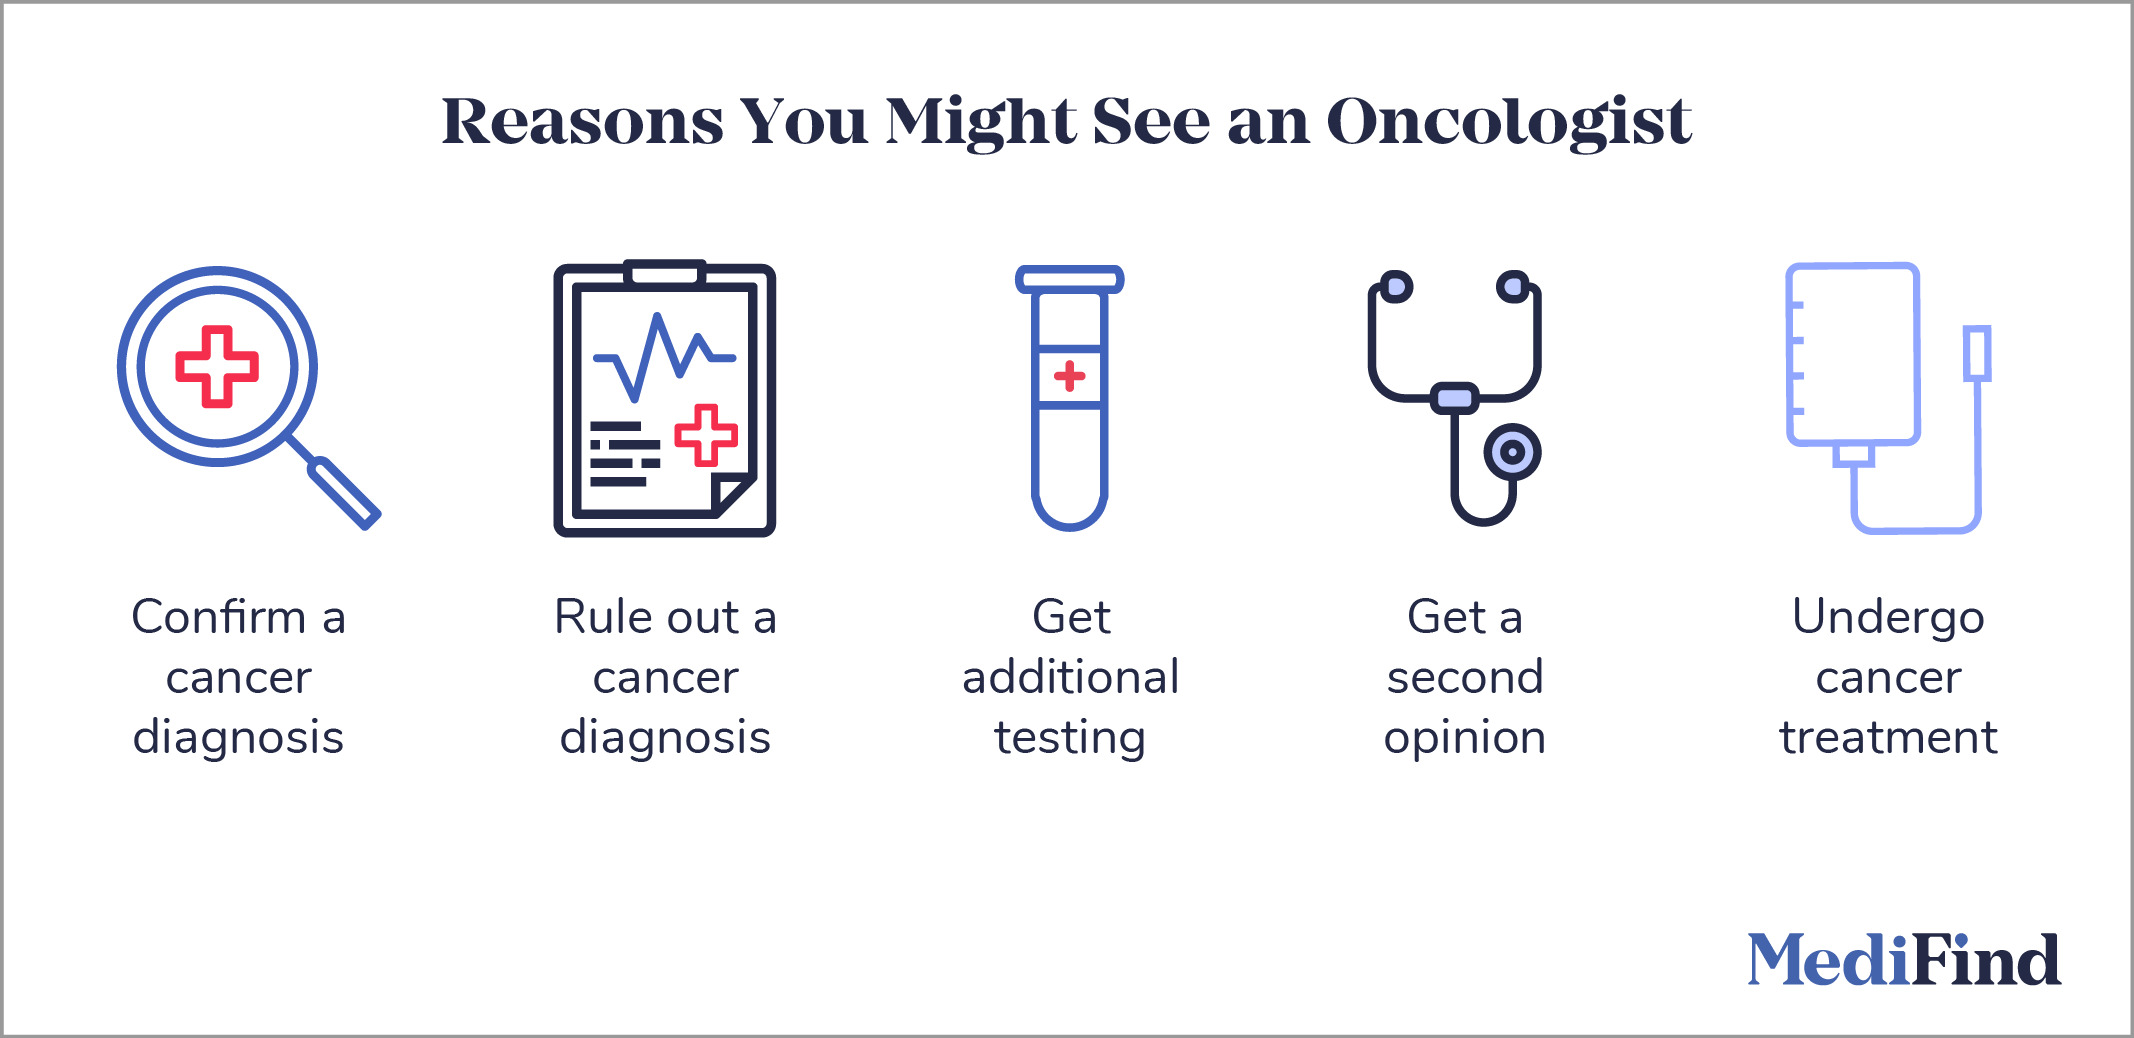 Reasons to See an Oncologist